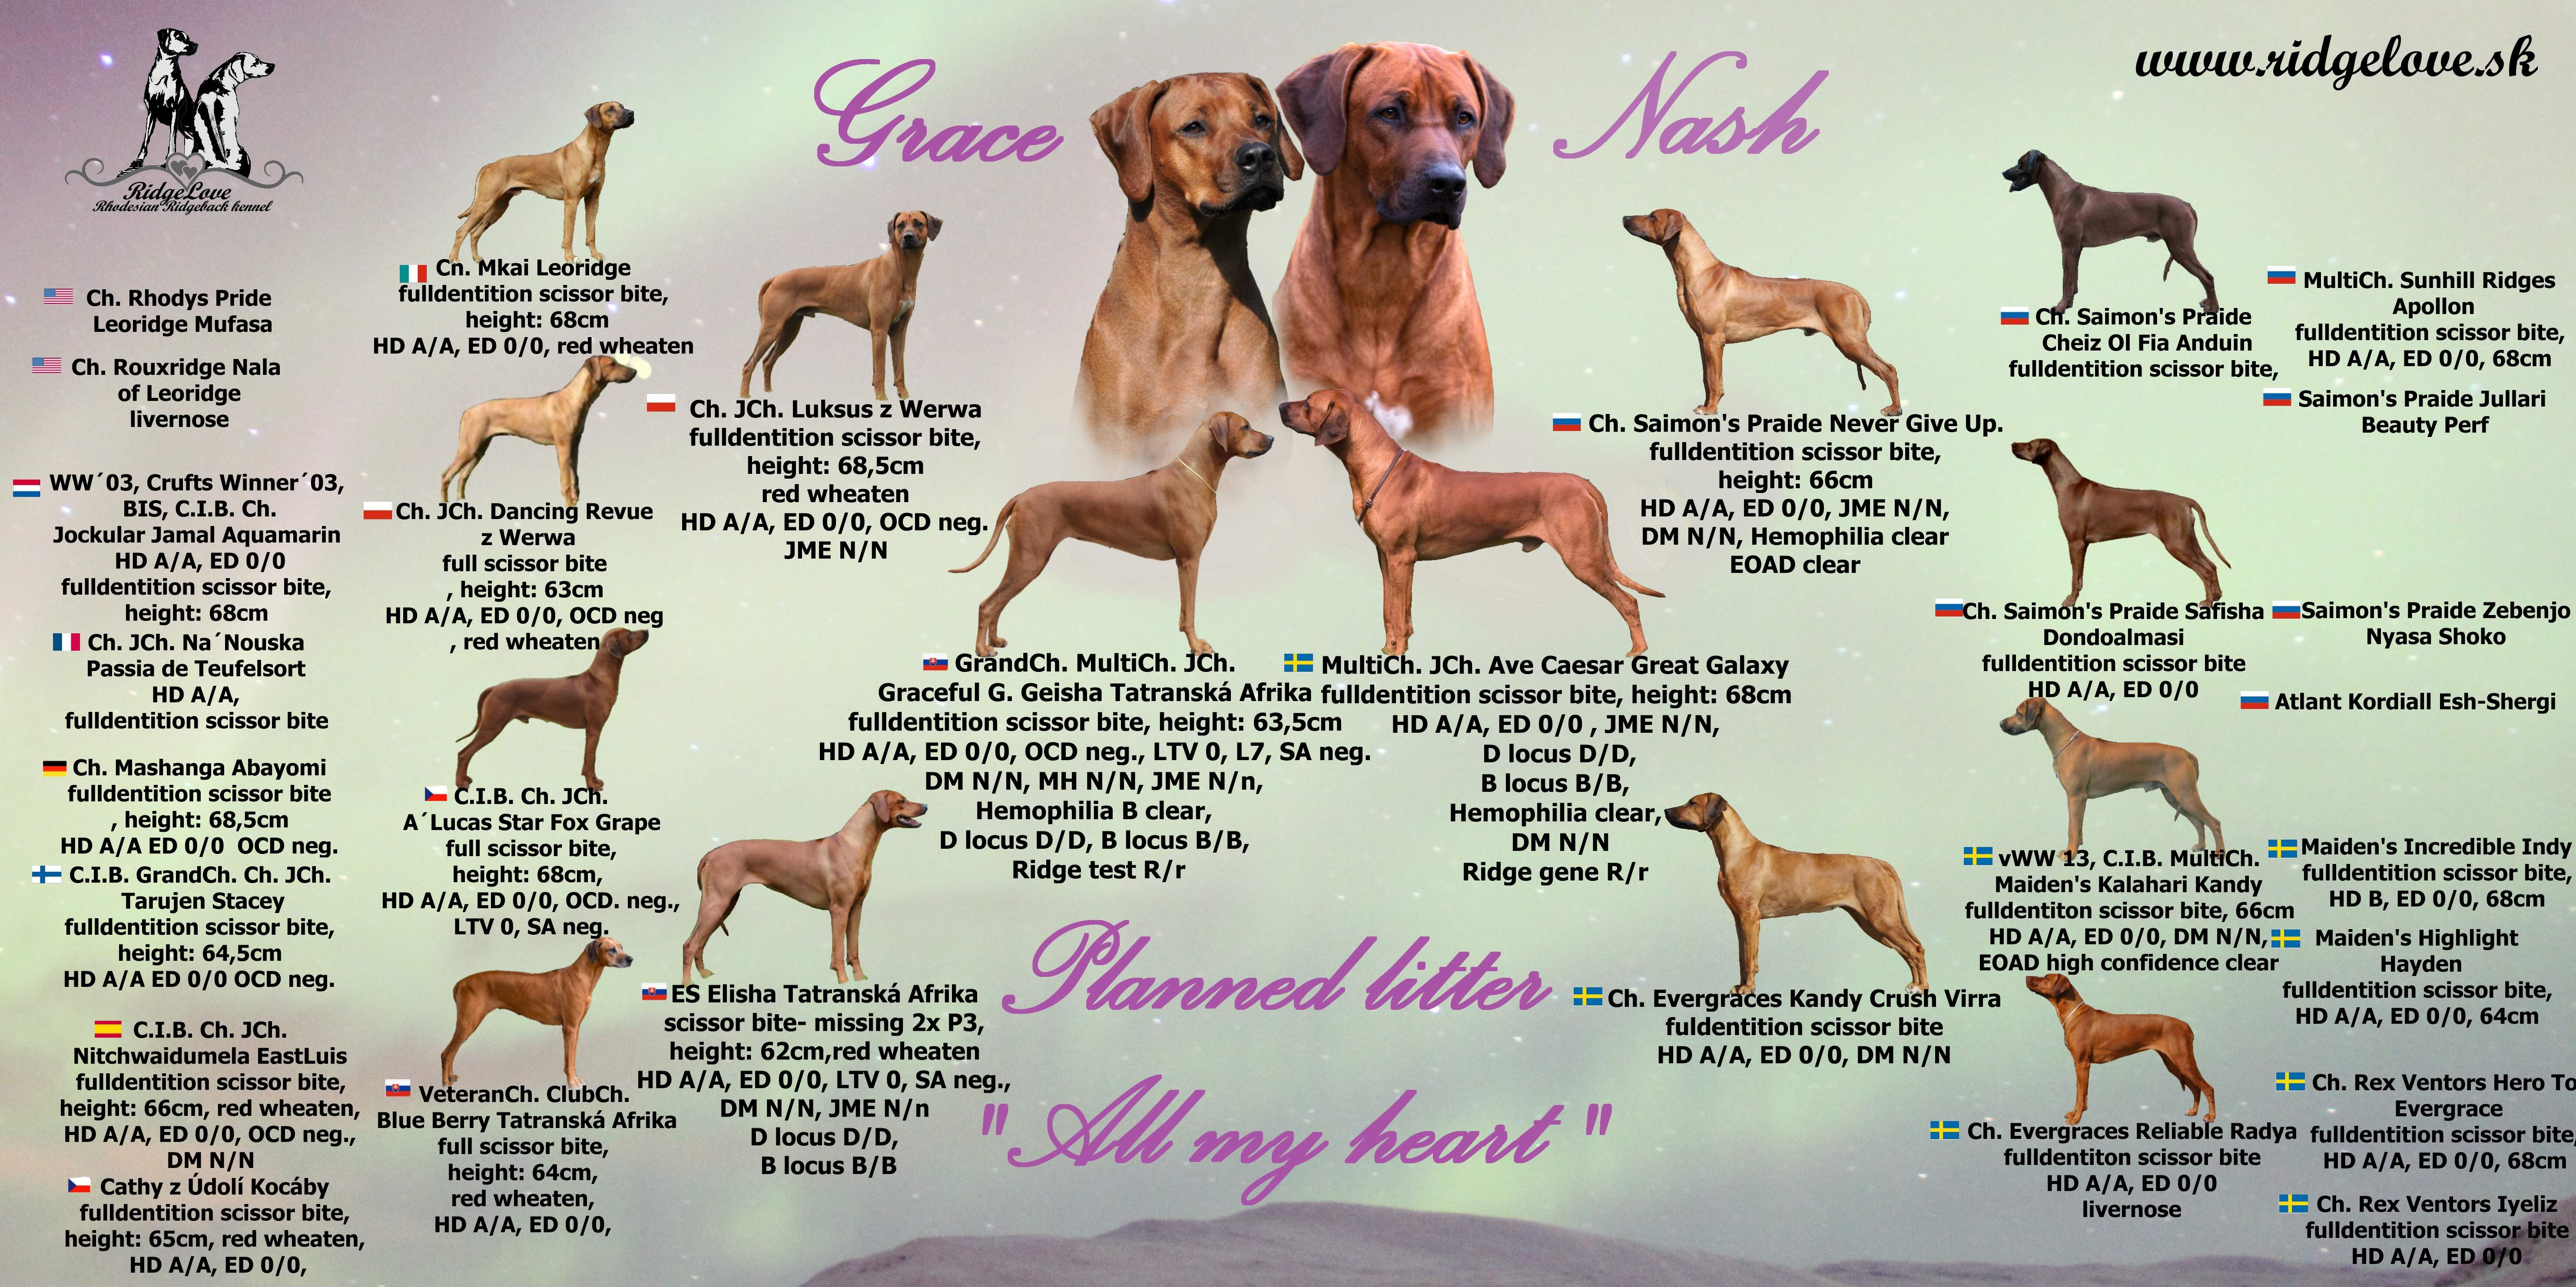 pedigree puppies Grace x Nash, Ave Caesar Great Galaxy puppies, Graceful G. Geisha puppies